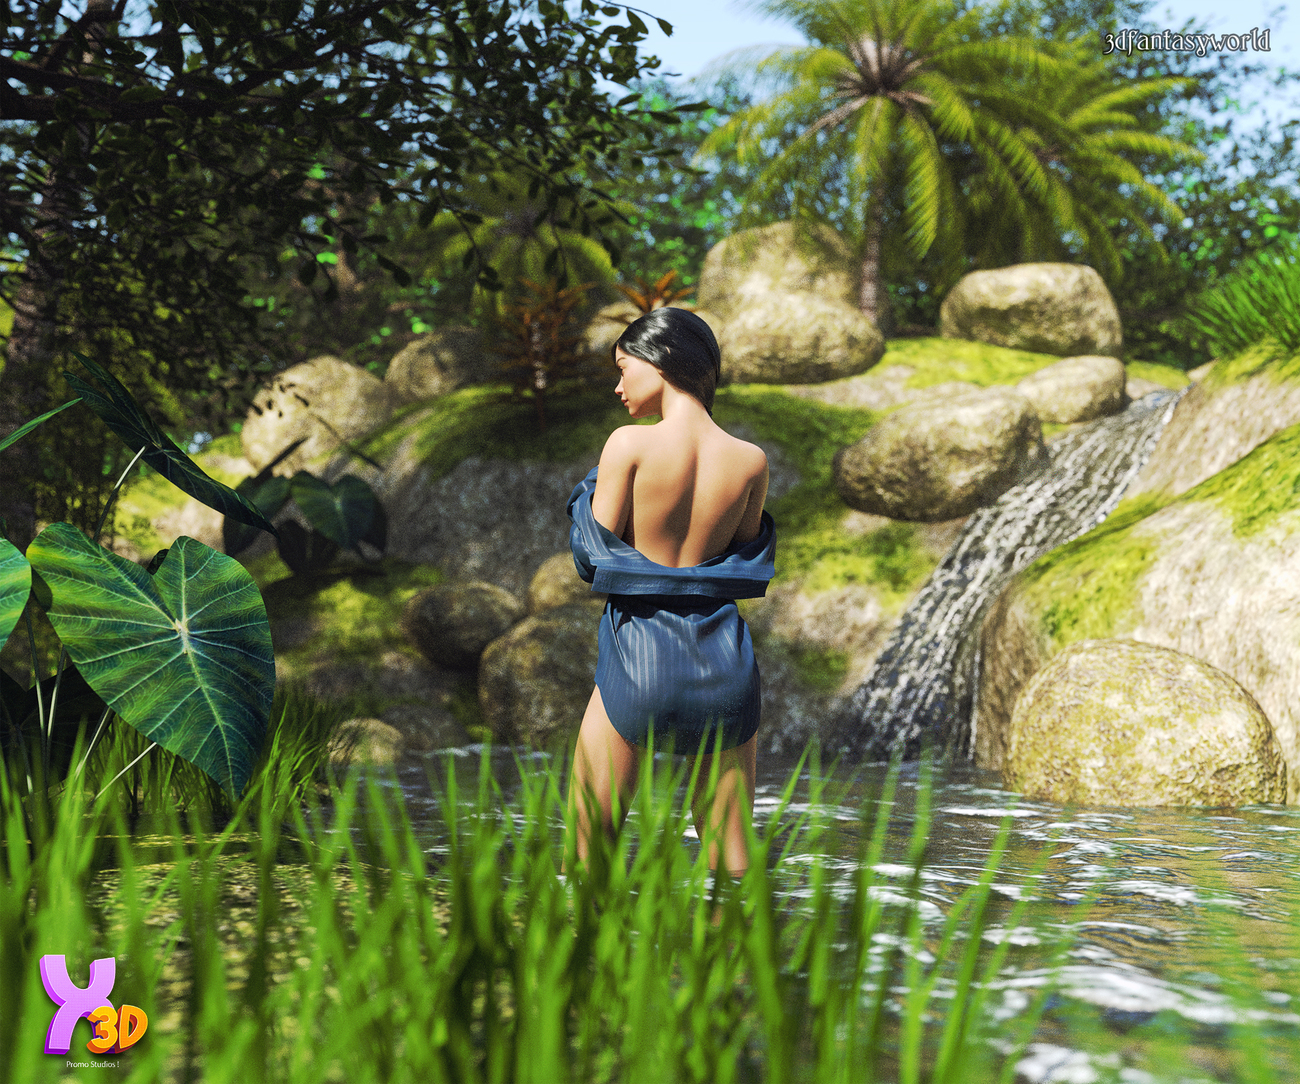 Tropical Place by fantasy3dworld